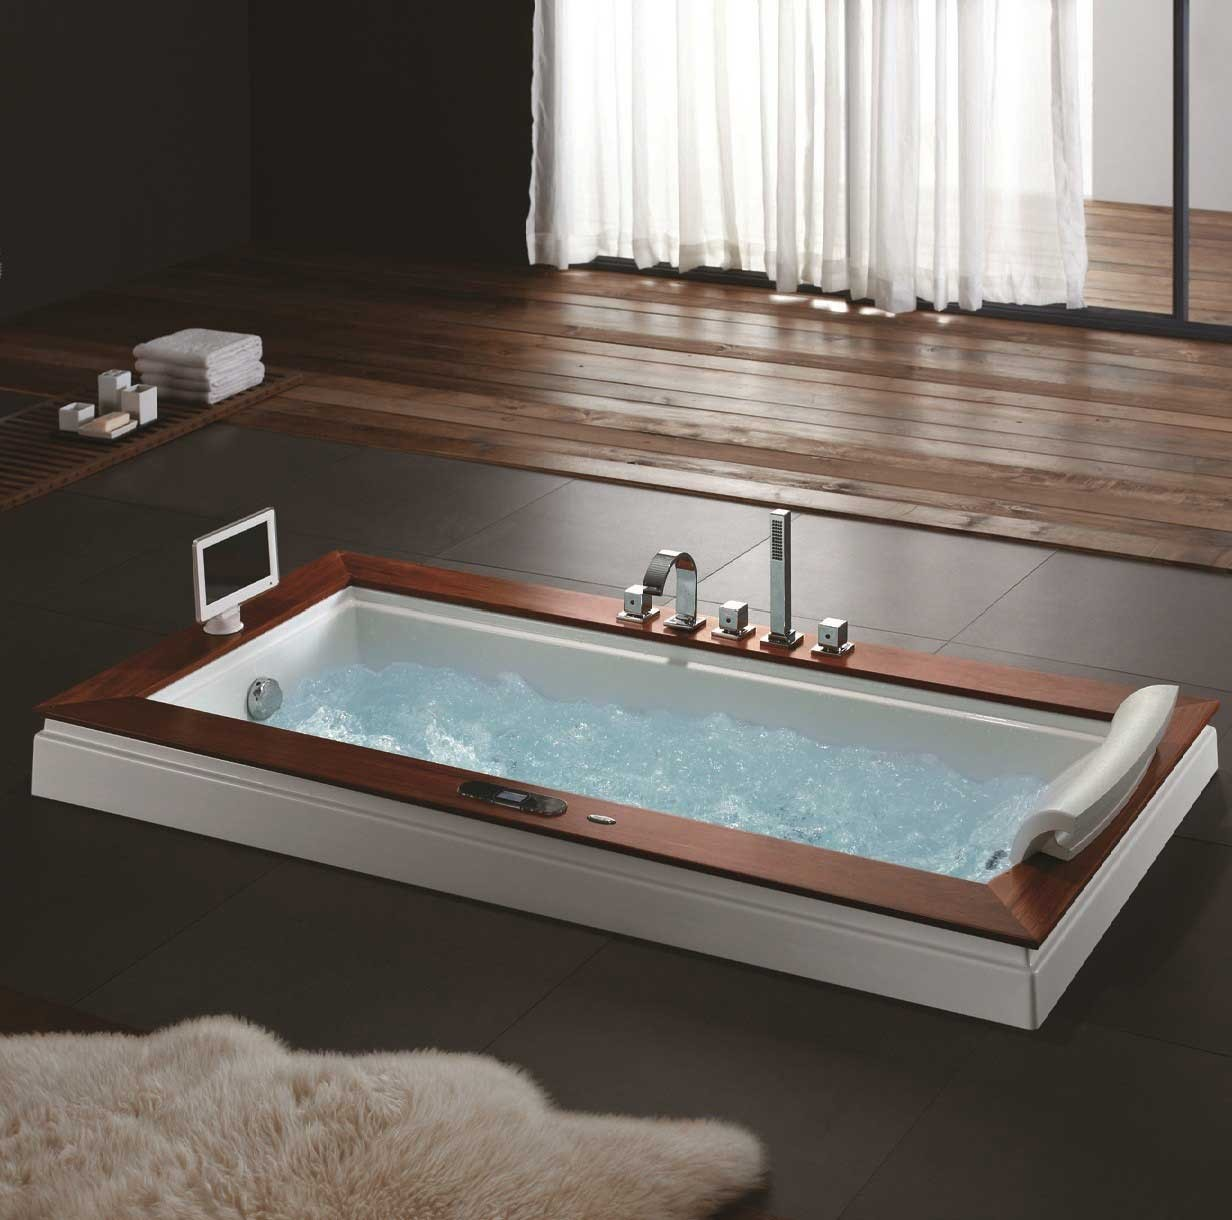 Madison Luxury Whirlpool TubMadison Whirlpool Tub. Whirlpool Insert For Bathtub. Home Design Ideas